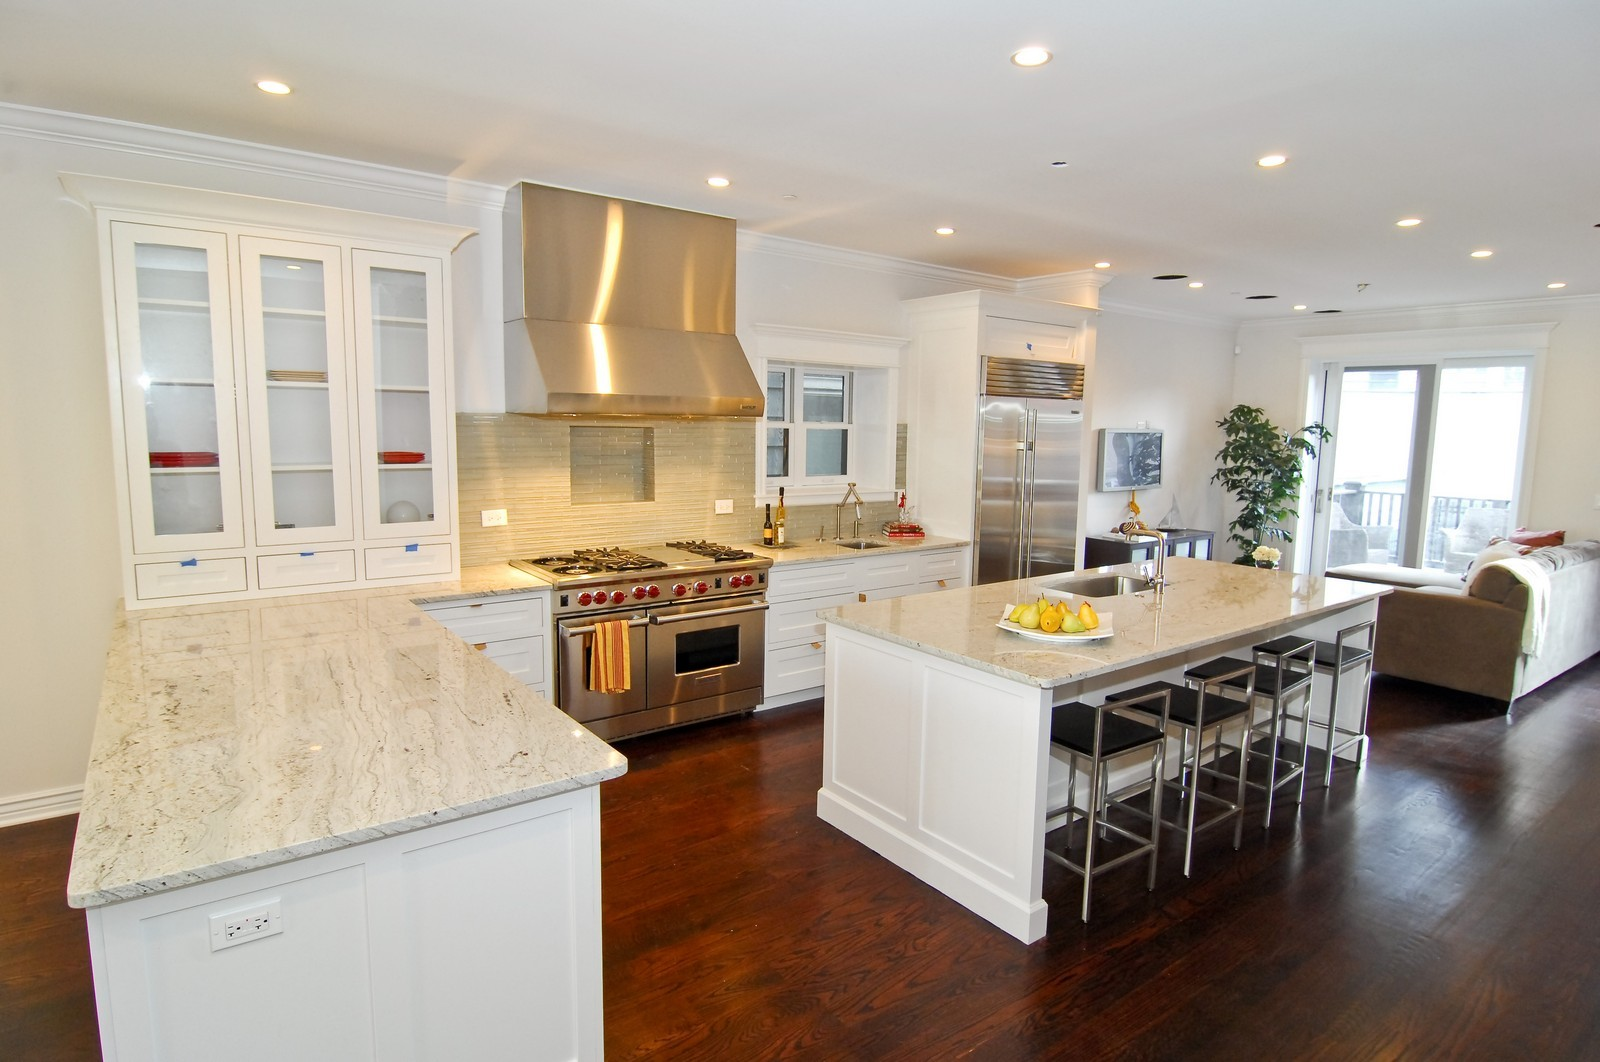 Real Estate Photography - 1845 W. Newport, Chicago, IL, 60657 - Kitchen